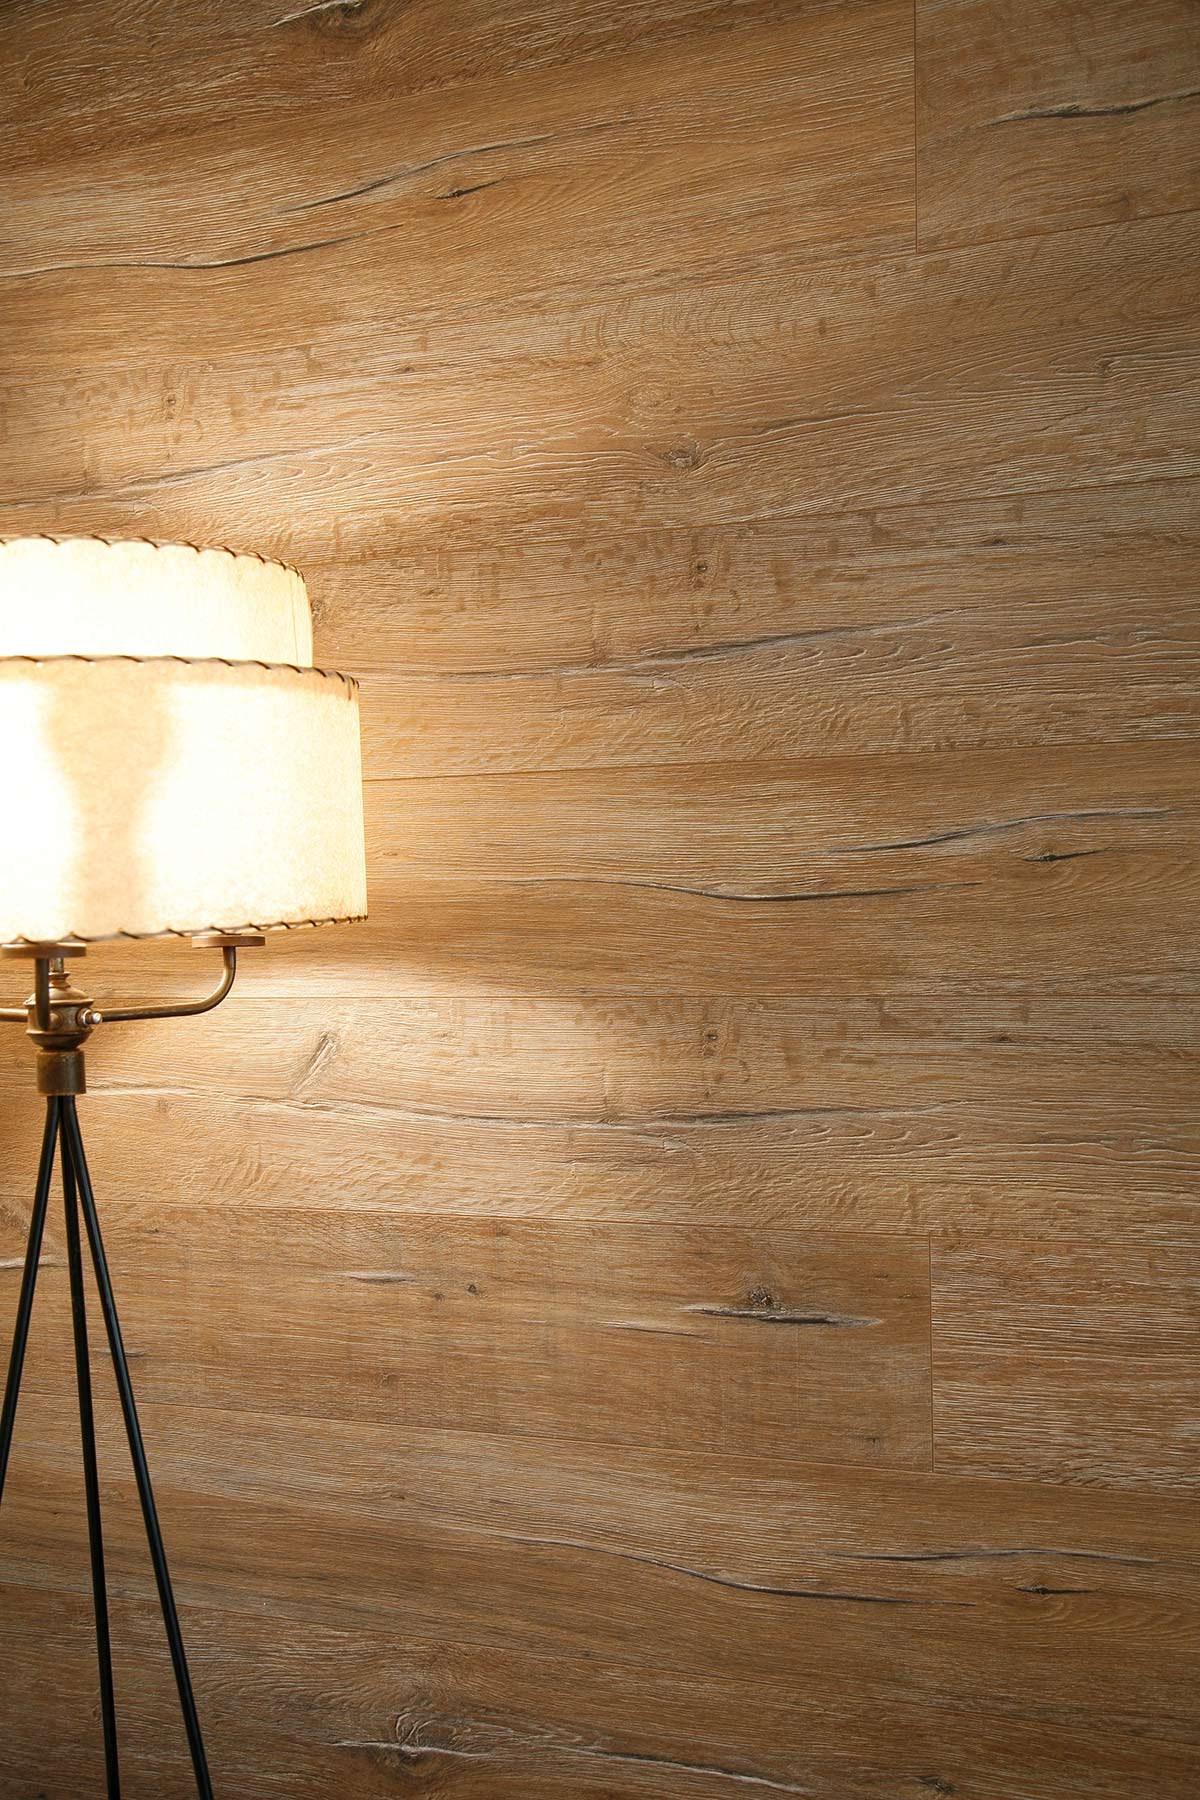 Wood covering on basement wall